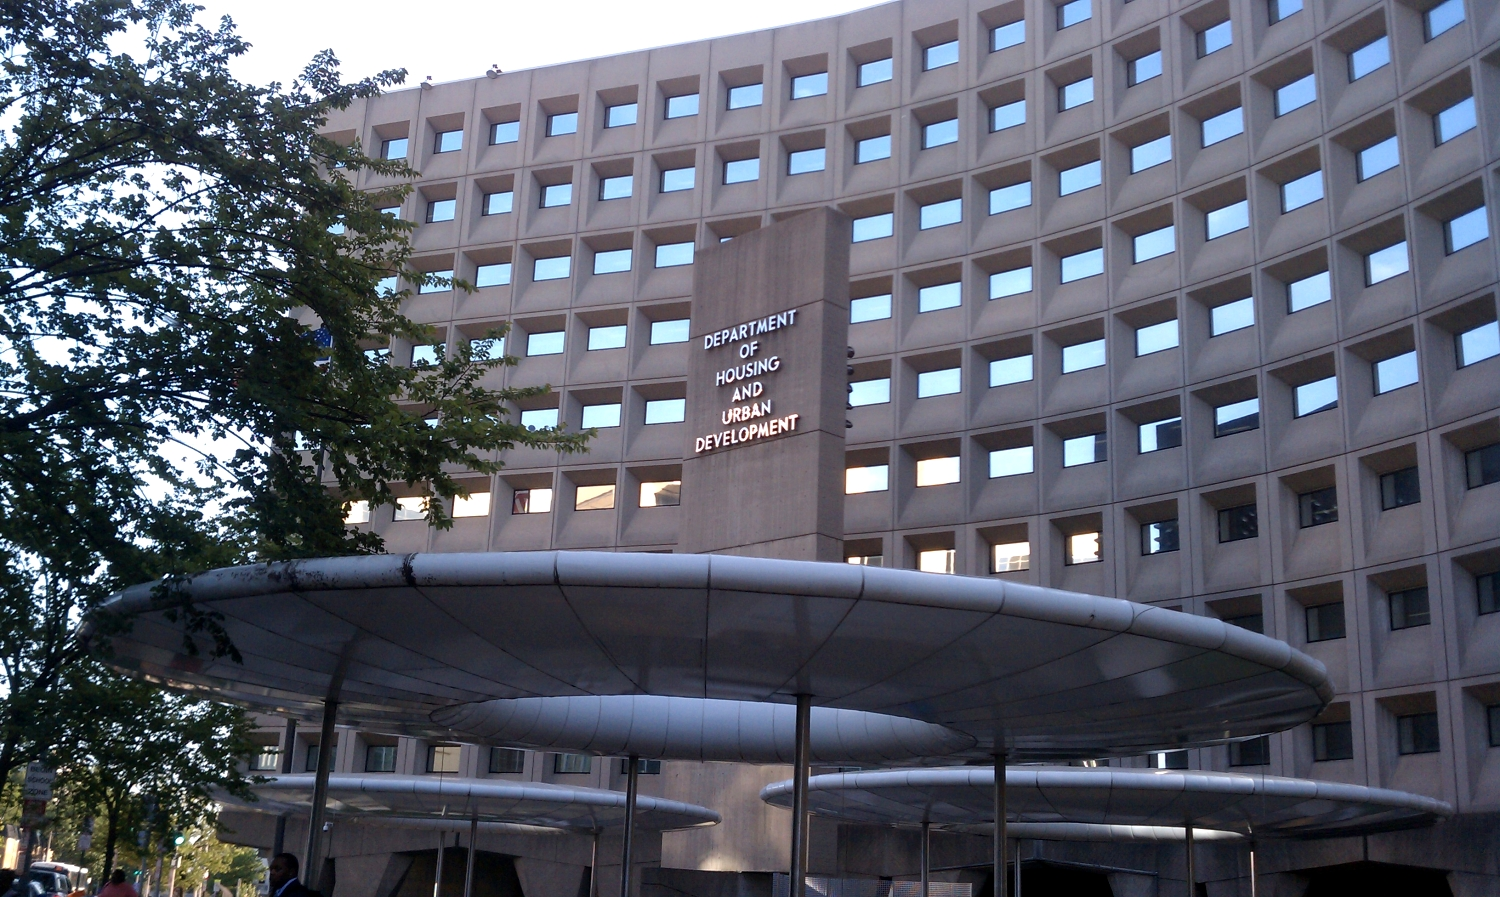 HUD Headquarters in Washington DC